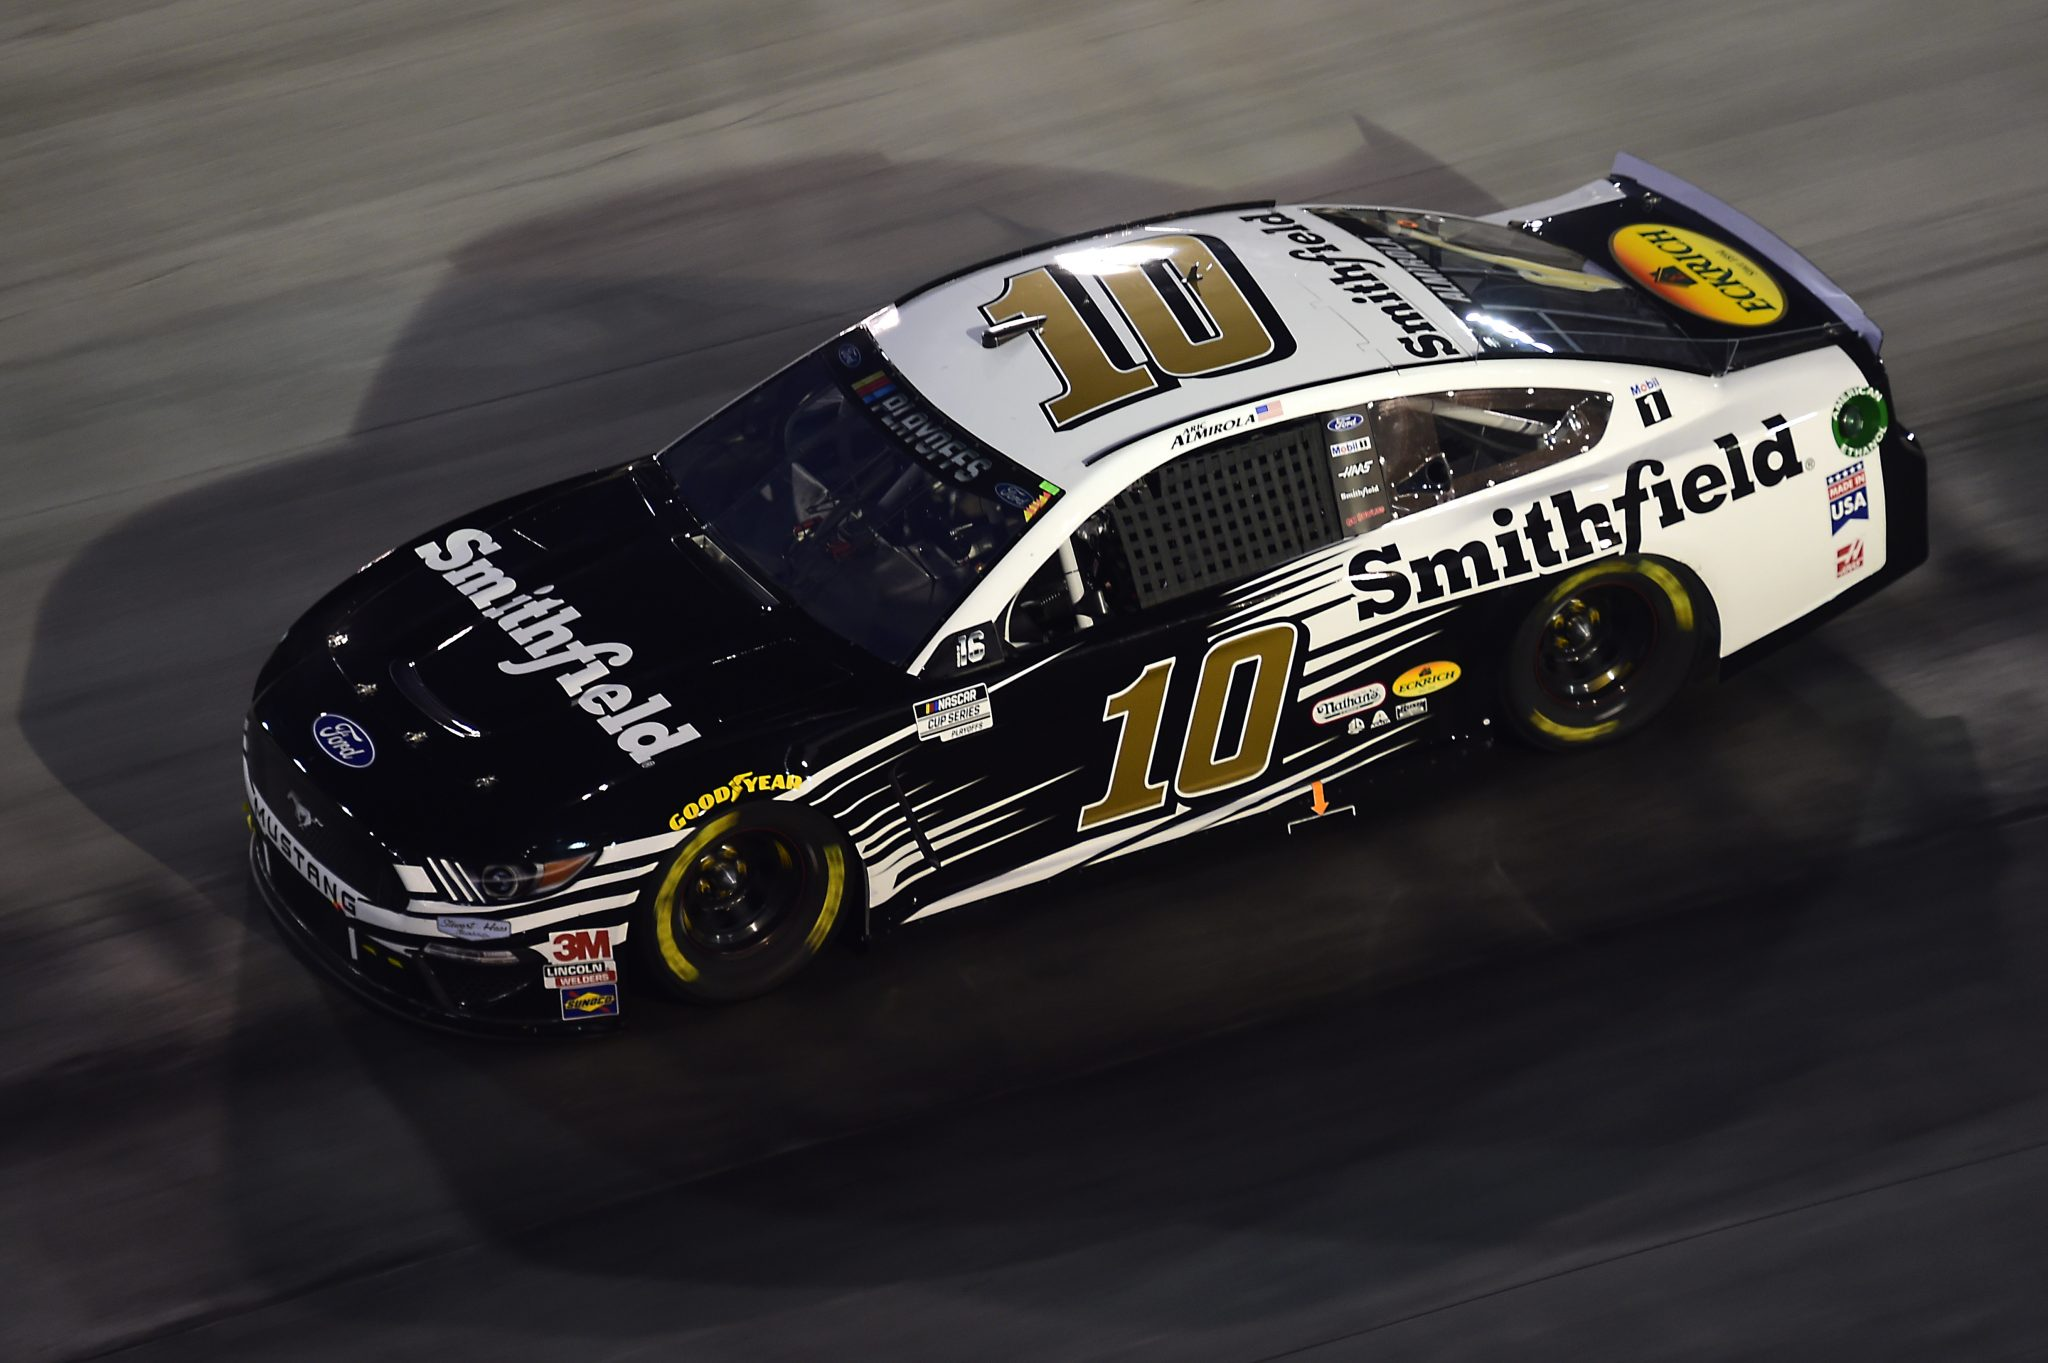 BRISTOL, TENNESSEE - SEPTEMBER 19: Aric Almirola, driver of the #10 Smithfield Ford, drives during the NASCAR Cup Series Bass Pro Shops Night Race at Bristol Motor Speedway on September 19, 2020 in Bristol, Tennessee. (Photo by Jared C. Tilton/Getty Images) | Getty Images